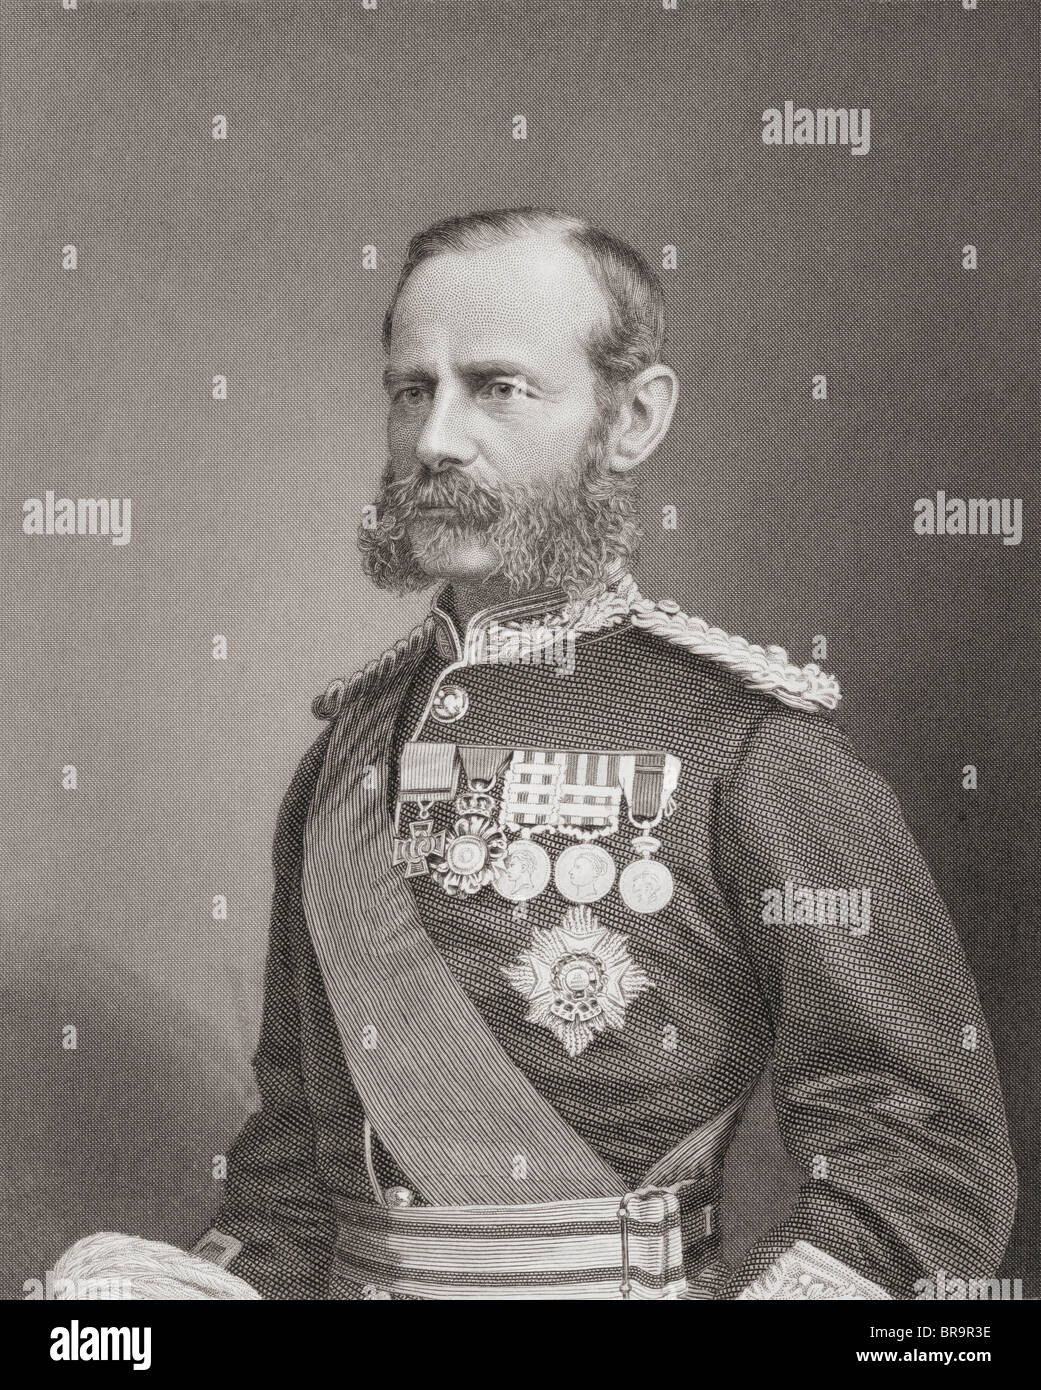 Field Marshal Frederick Sleigh Roberts, 1st Earl Roberts,1832 to 1914. Anglo-Irish soldier and commander. - Stock Image